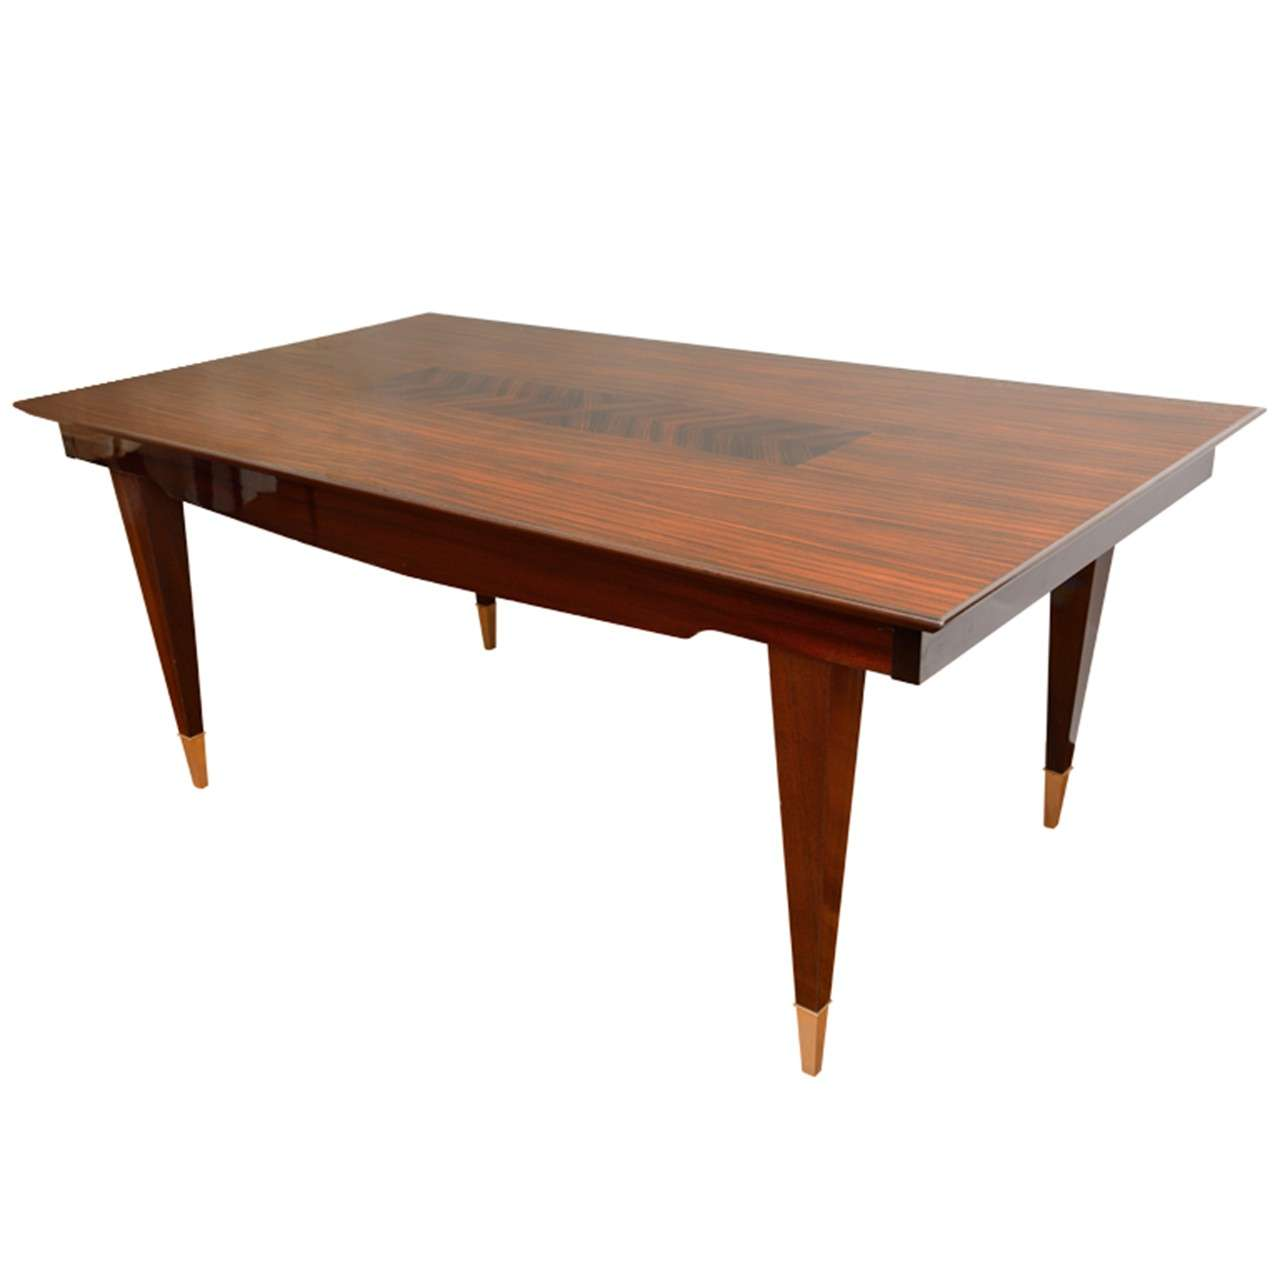 French art deco dining table saturday sale for sale at 1stdibs for Art dining room furniture